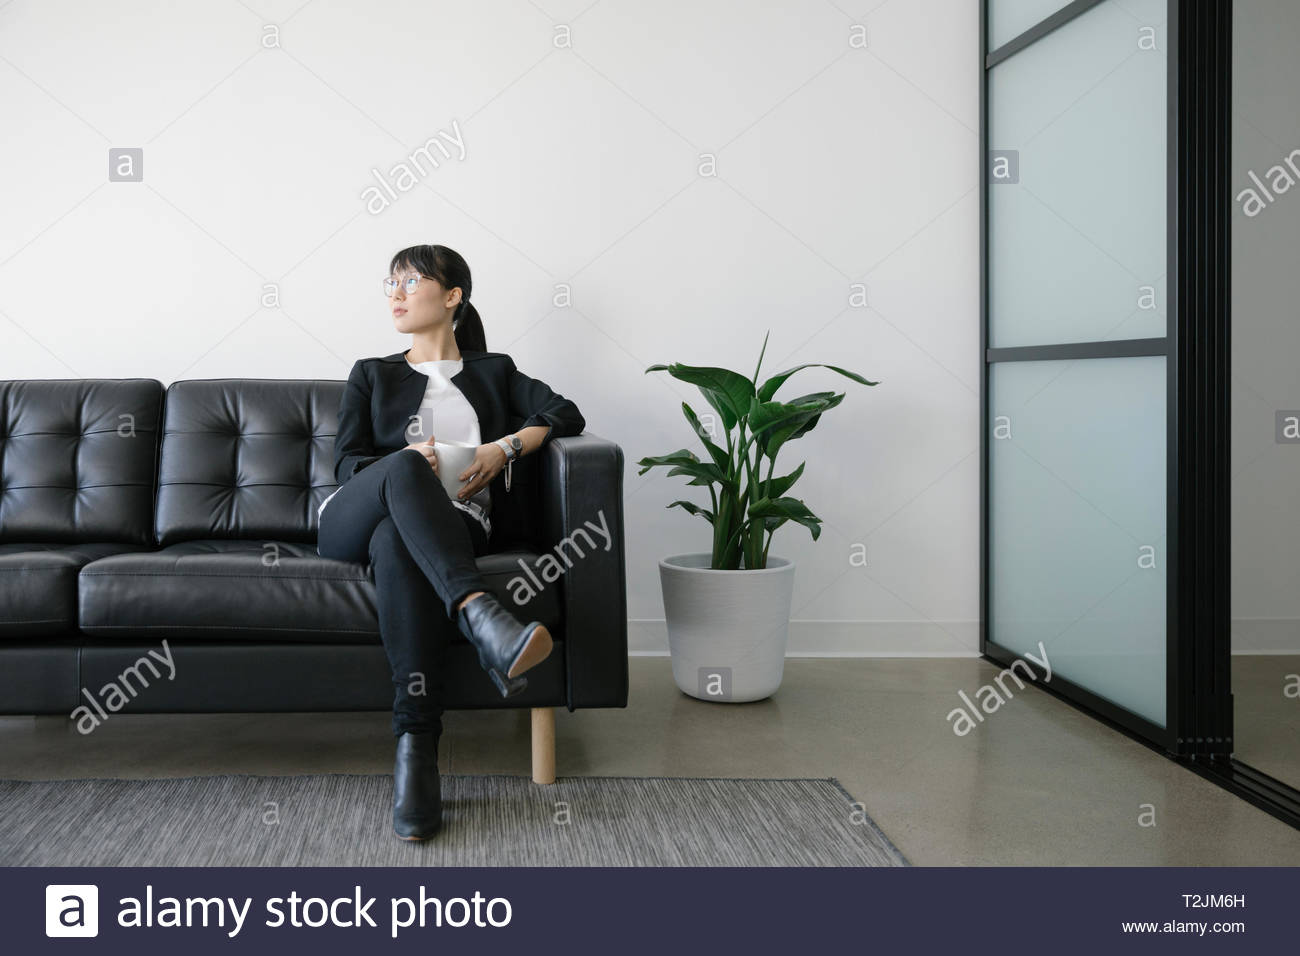 Thoughtful businesswoman with coffee on leather sofa - Stock Image